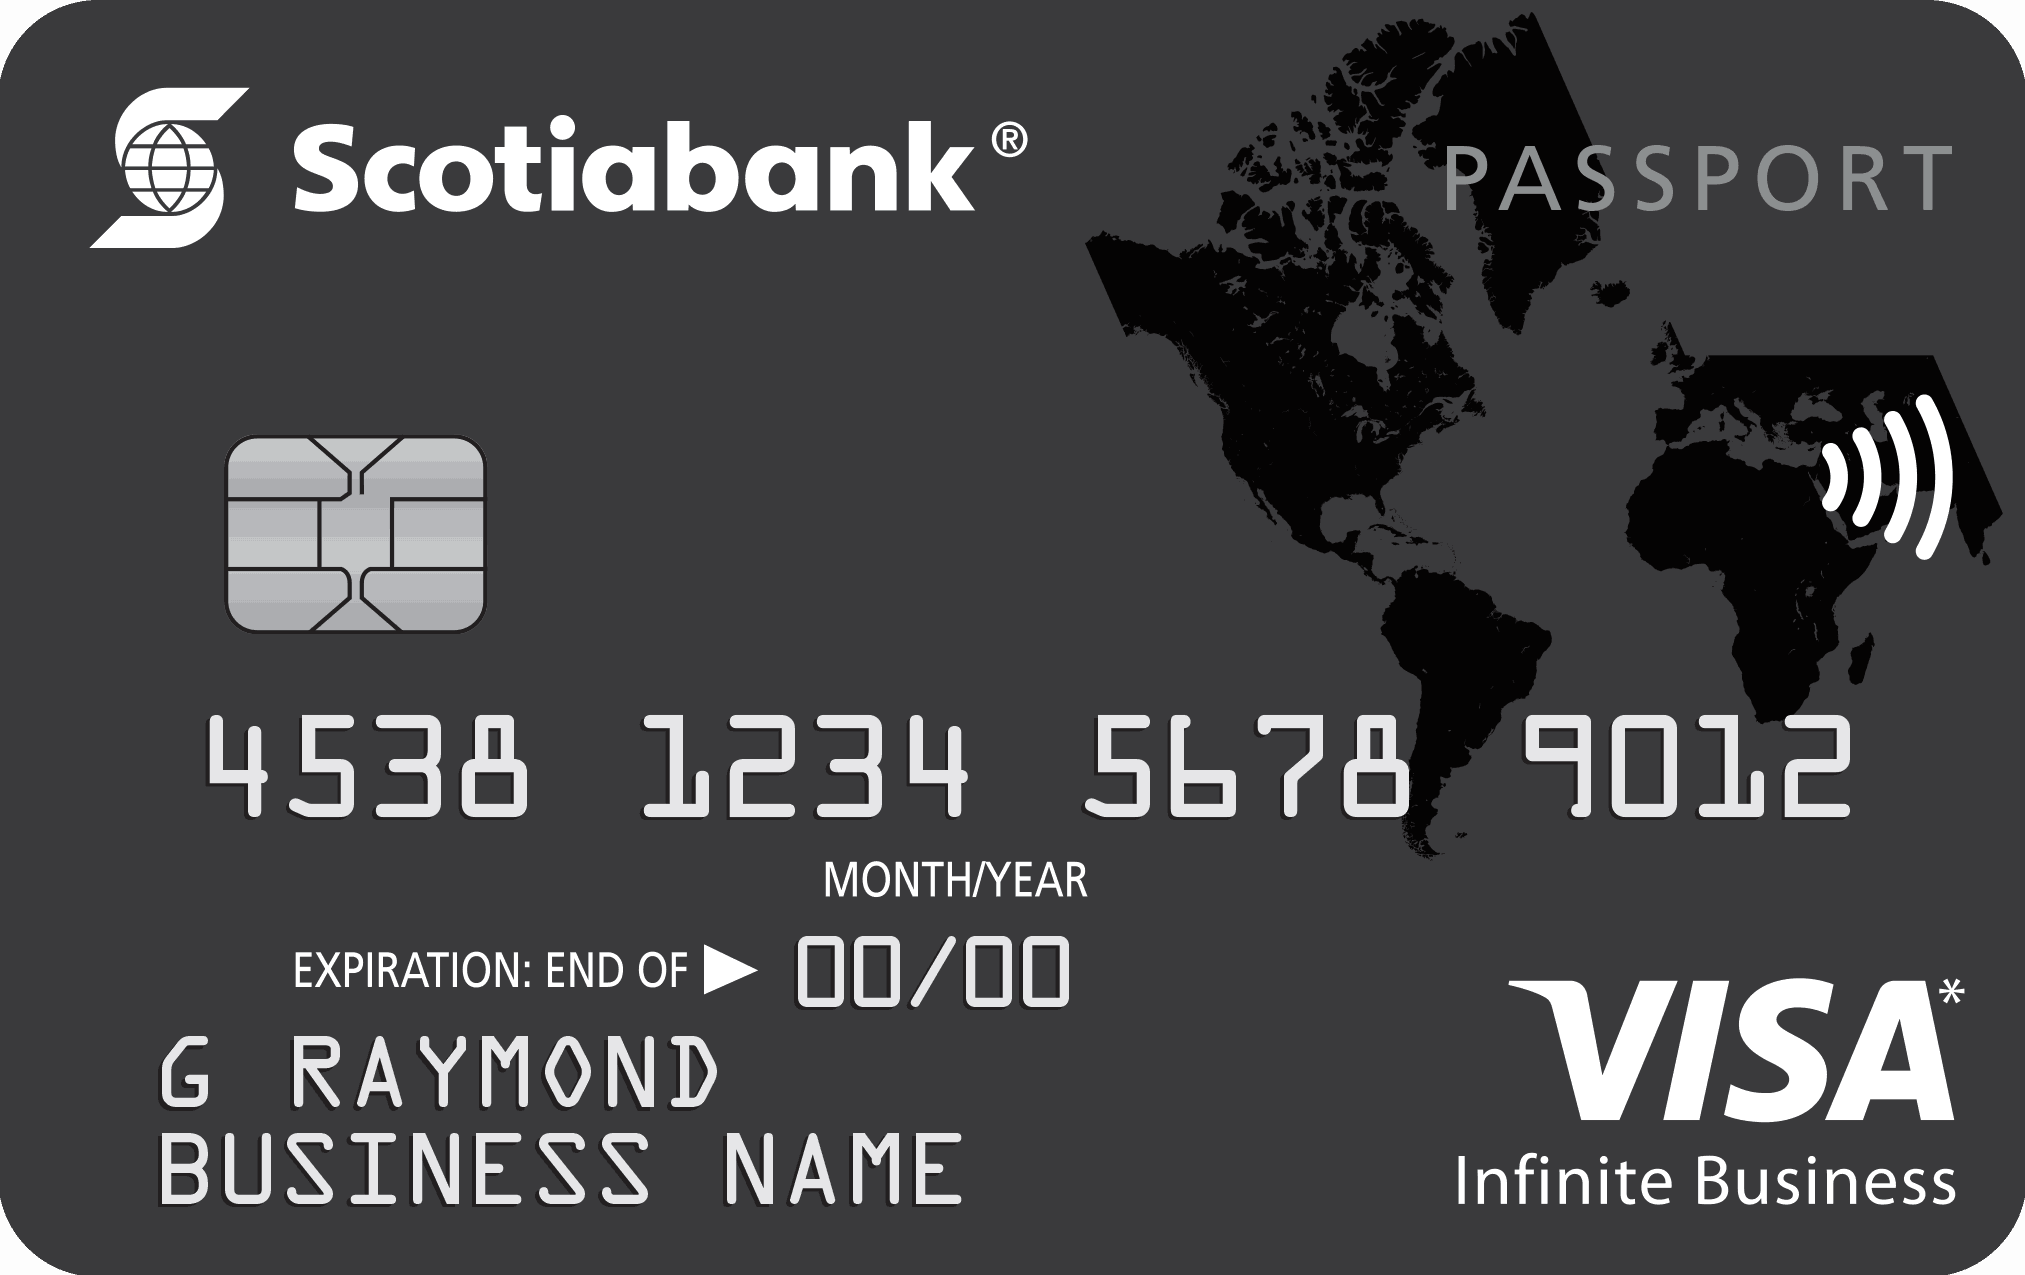 Scotiabank Passport Visa Infinite Business card review